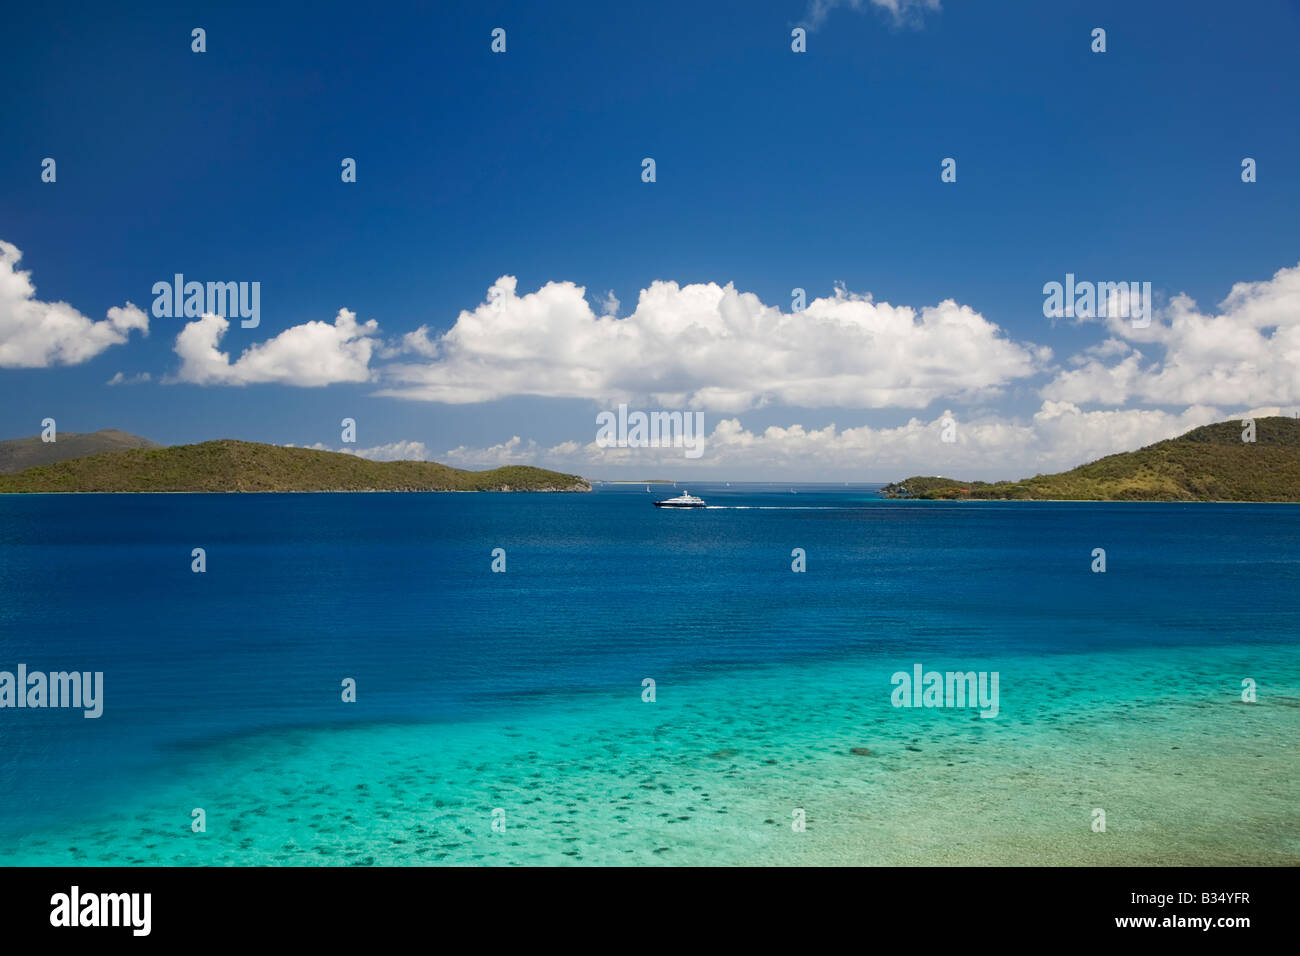 British Virgin Islands as seen from Annaberg Ruins area on the caribbean island of St John in the US Virgin Islands - Stock Image